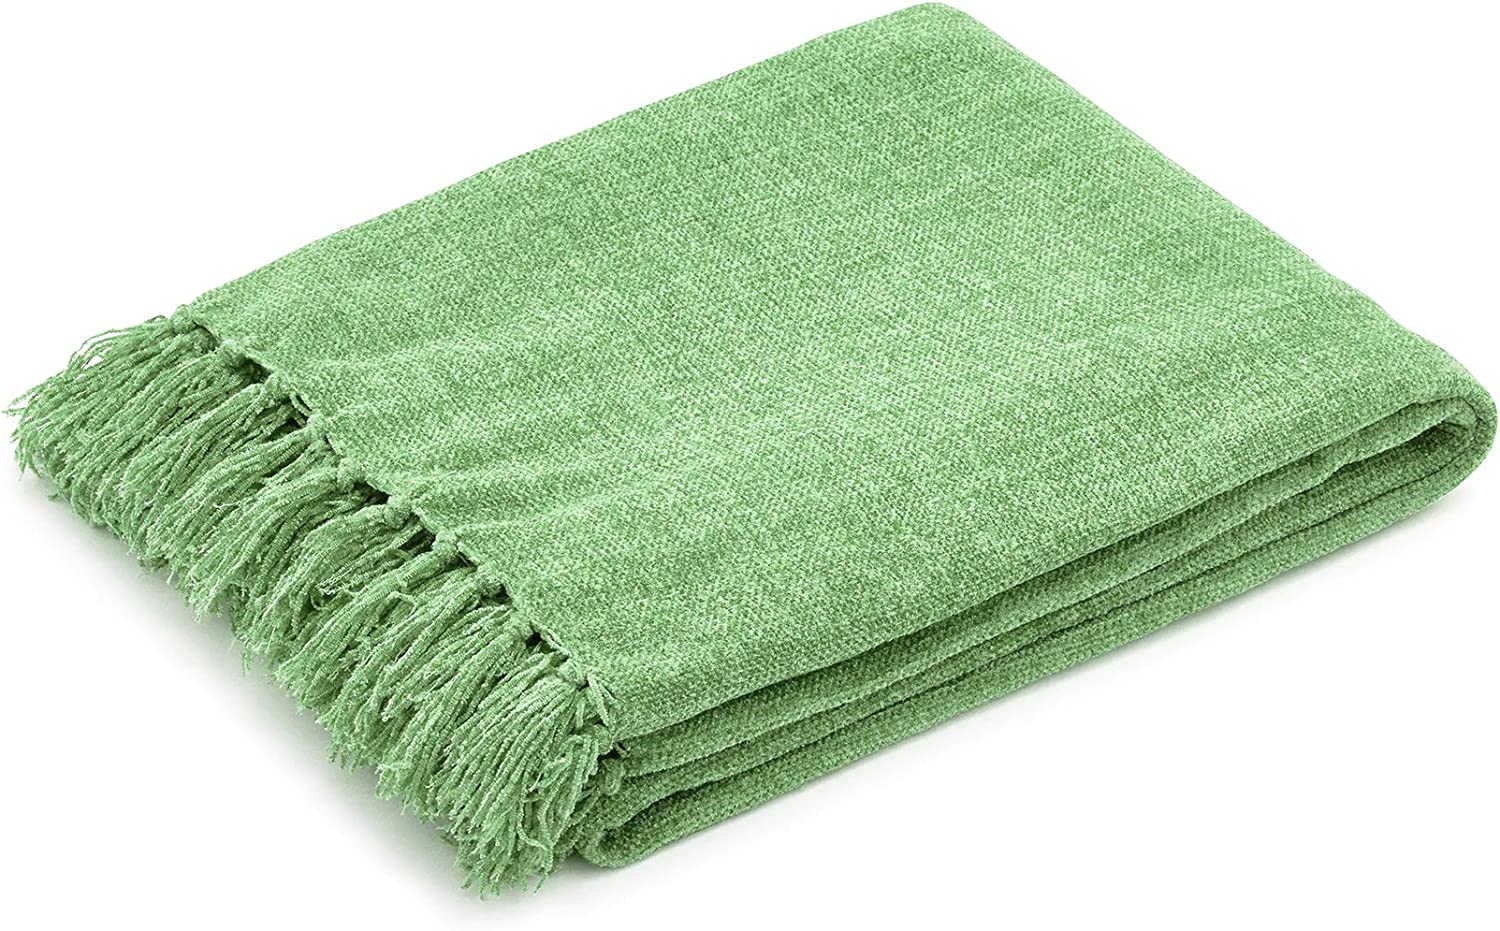 """Americanflat Chenille Throw Blanket in Sage Green - Breathable Polyester with Decorative Fringe - Wrinkle and Fade Resistant - 50"""" x 60"""" (CHEN5060SAGE)"""